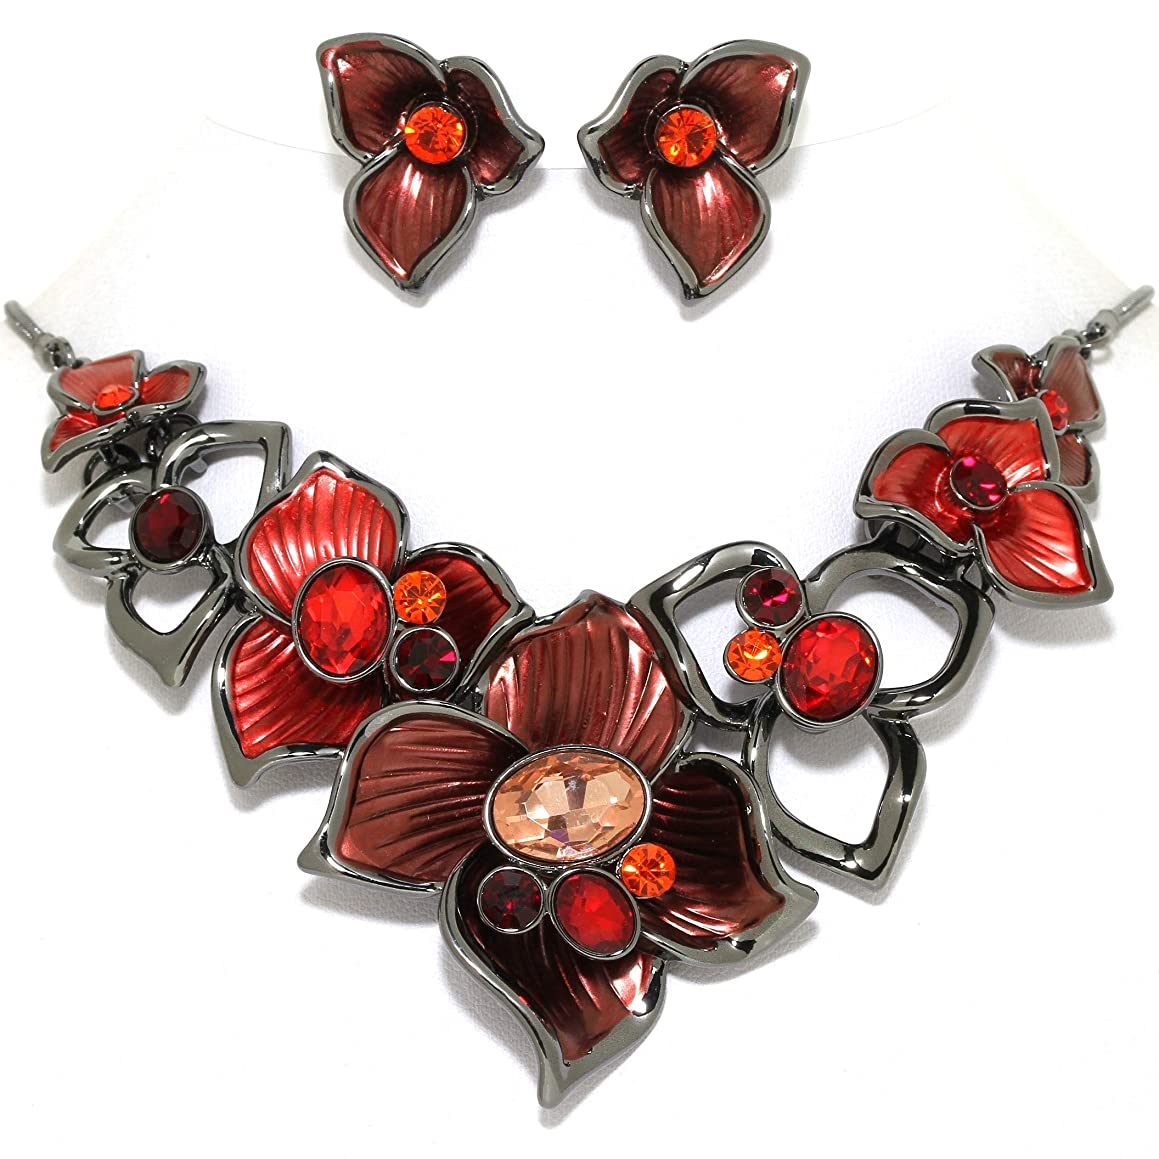 AnsonsImages Necklace Earrings Set Flowers Gems Rhinestones Multi Color Red Dark Gray Tone Alloy